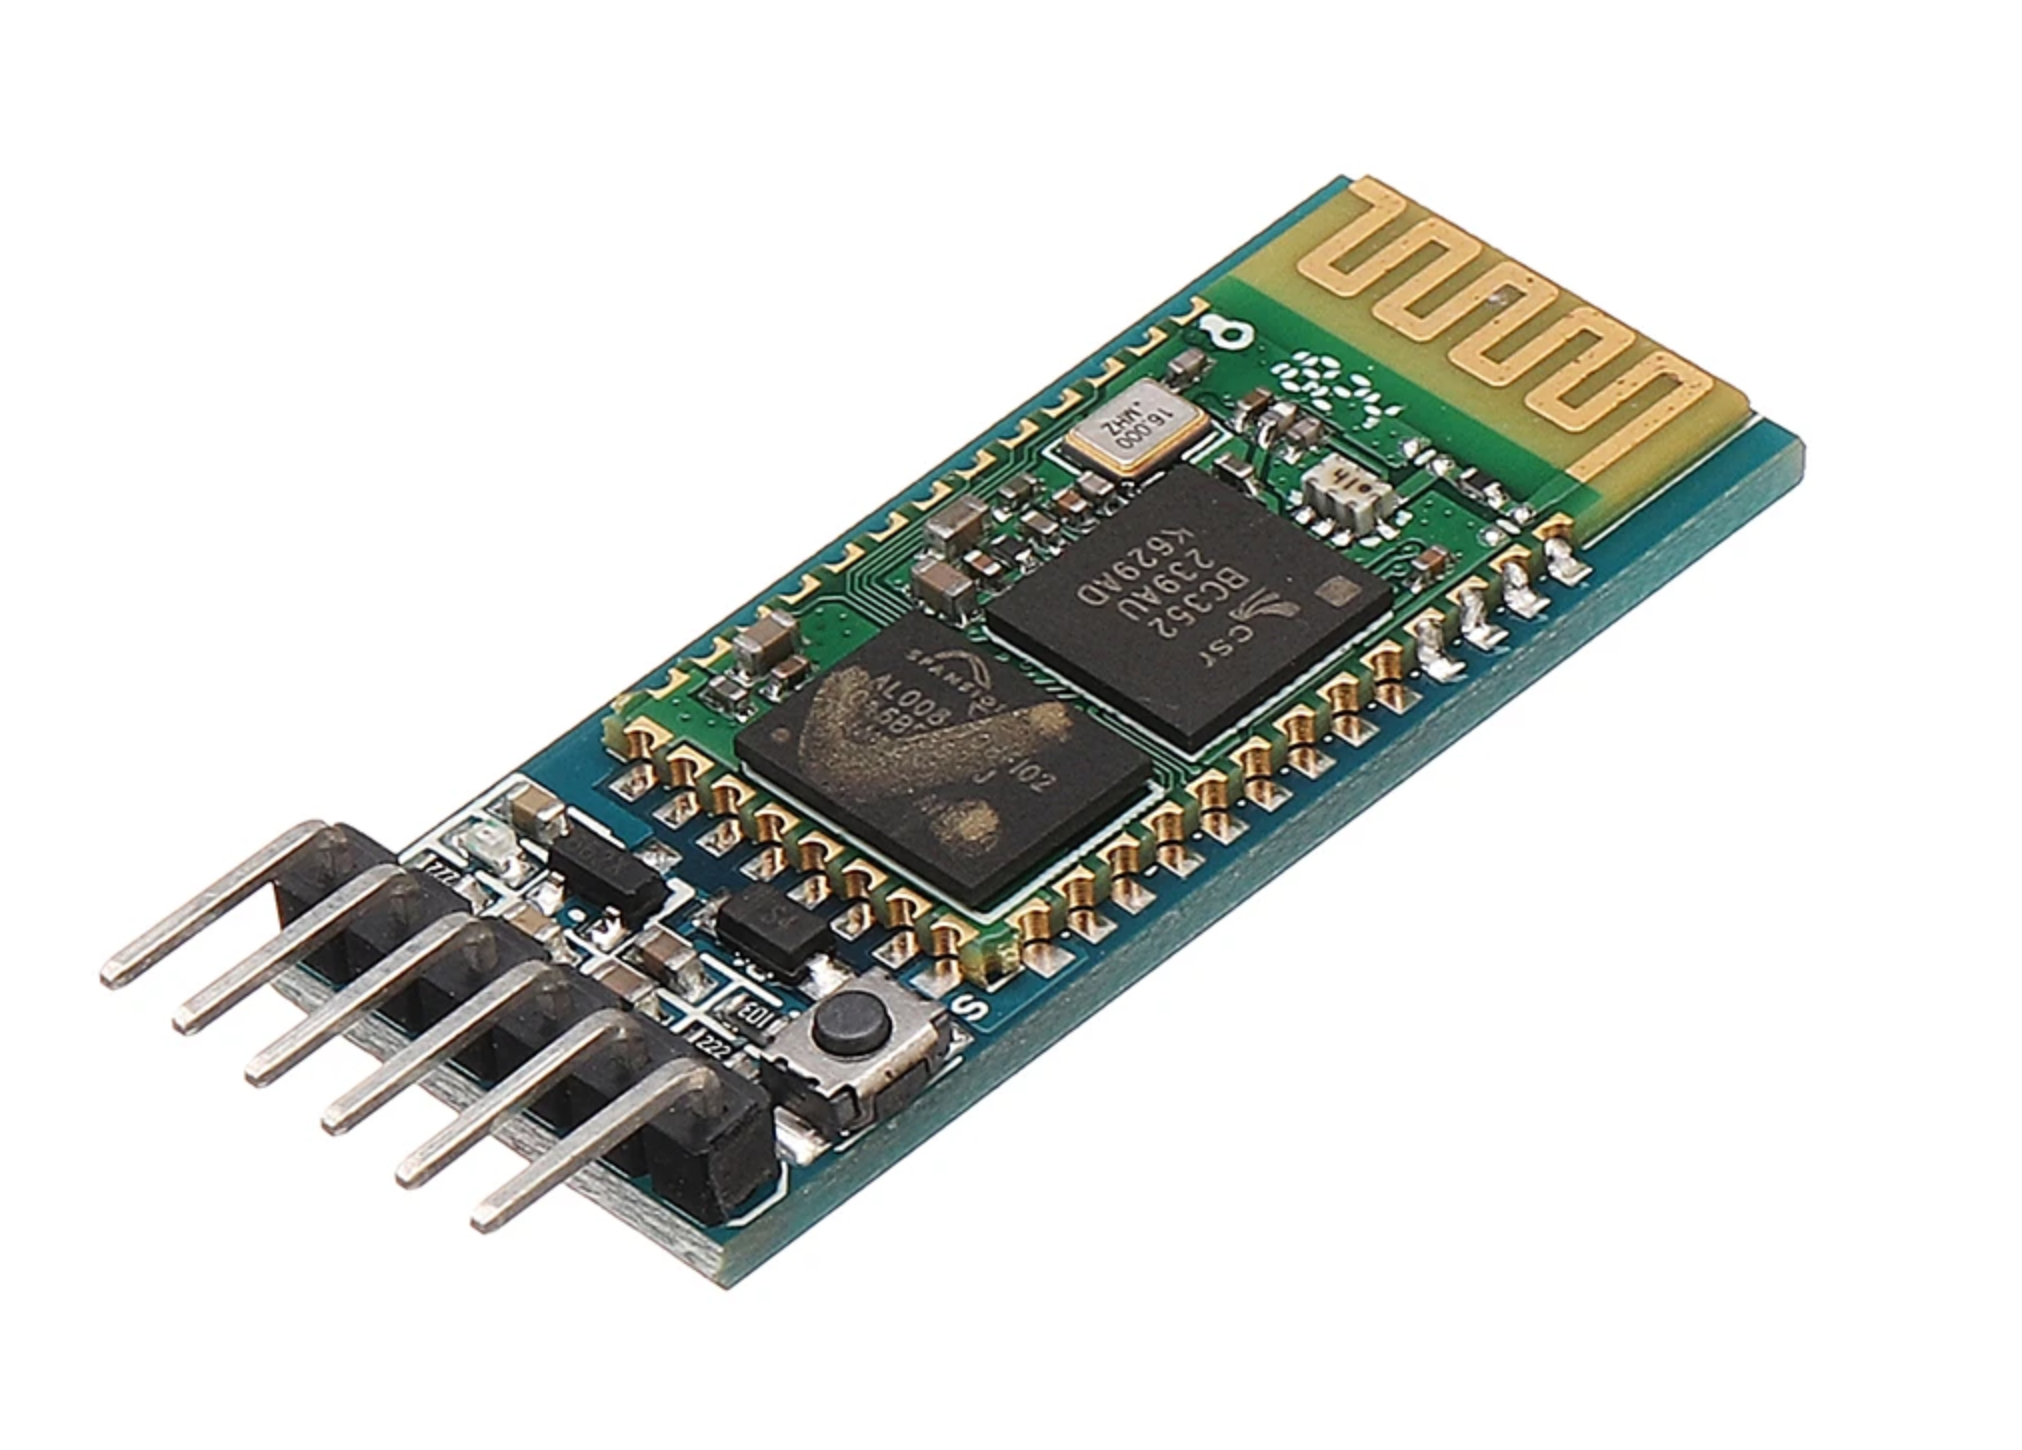 Geekcreit® HC-05 Wireless bluetooth Serial Transceiver Module Slave And Master Geekcreit for Arduino - products that work with official Arduino boards